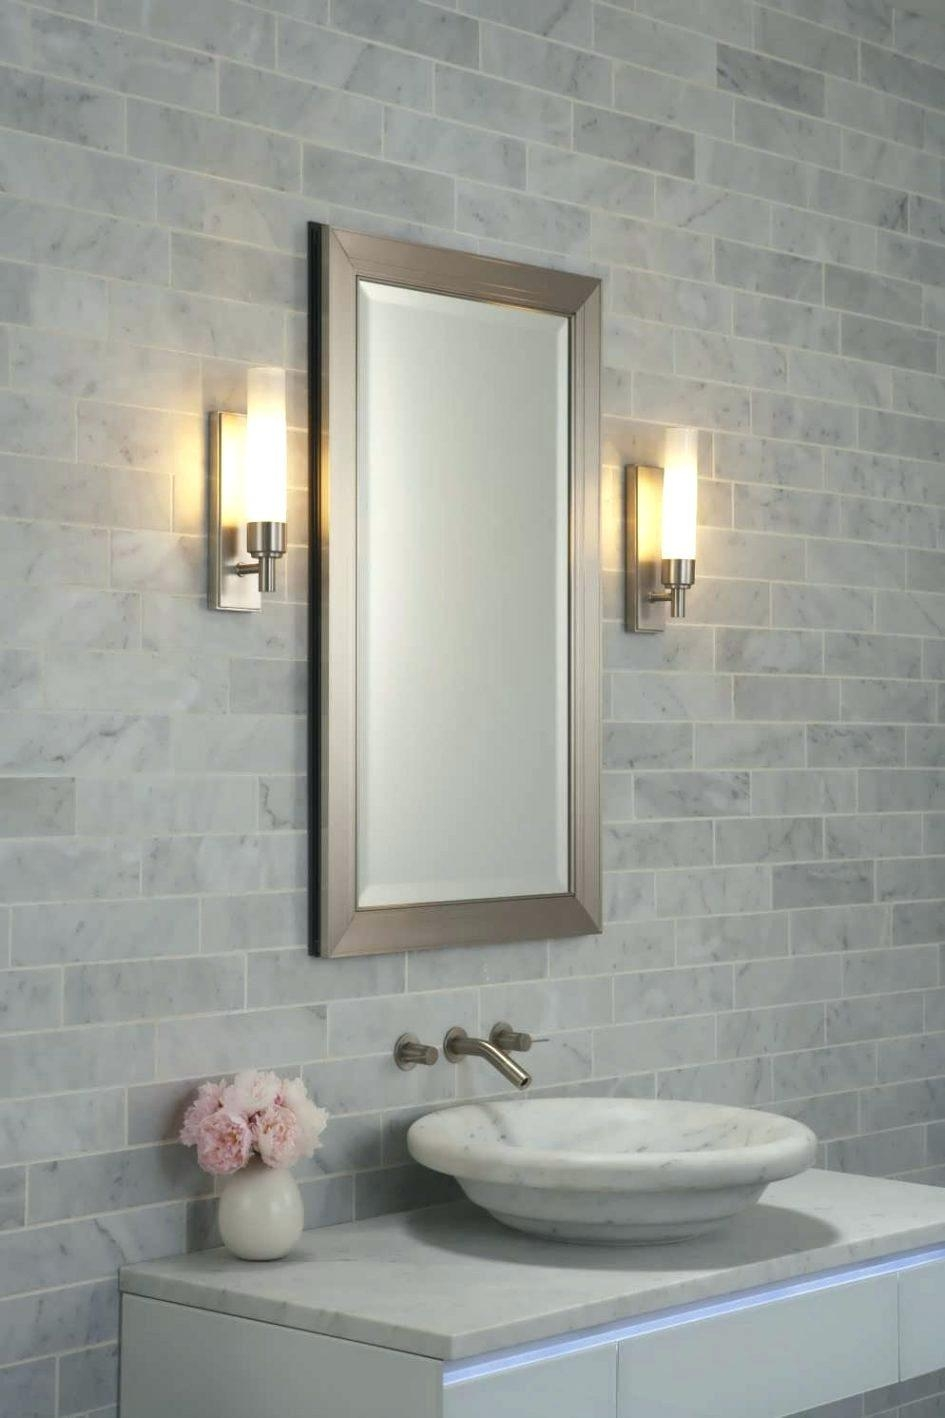 Wall Mirrors ~ Frameless Bathroom Wall Mirrors 36X60 Inch Within Safety Mirrors For Bathrooms (View 11 of 20)